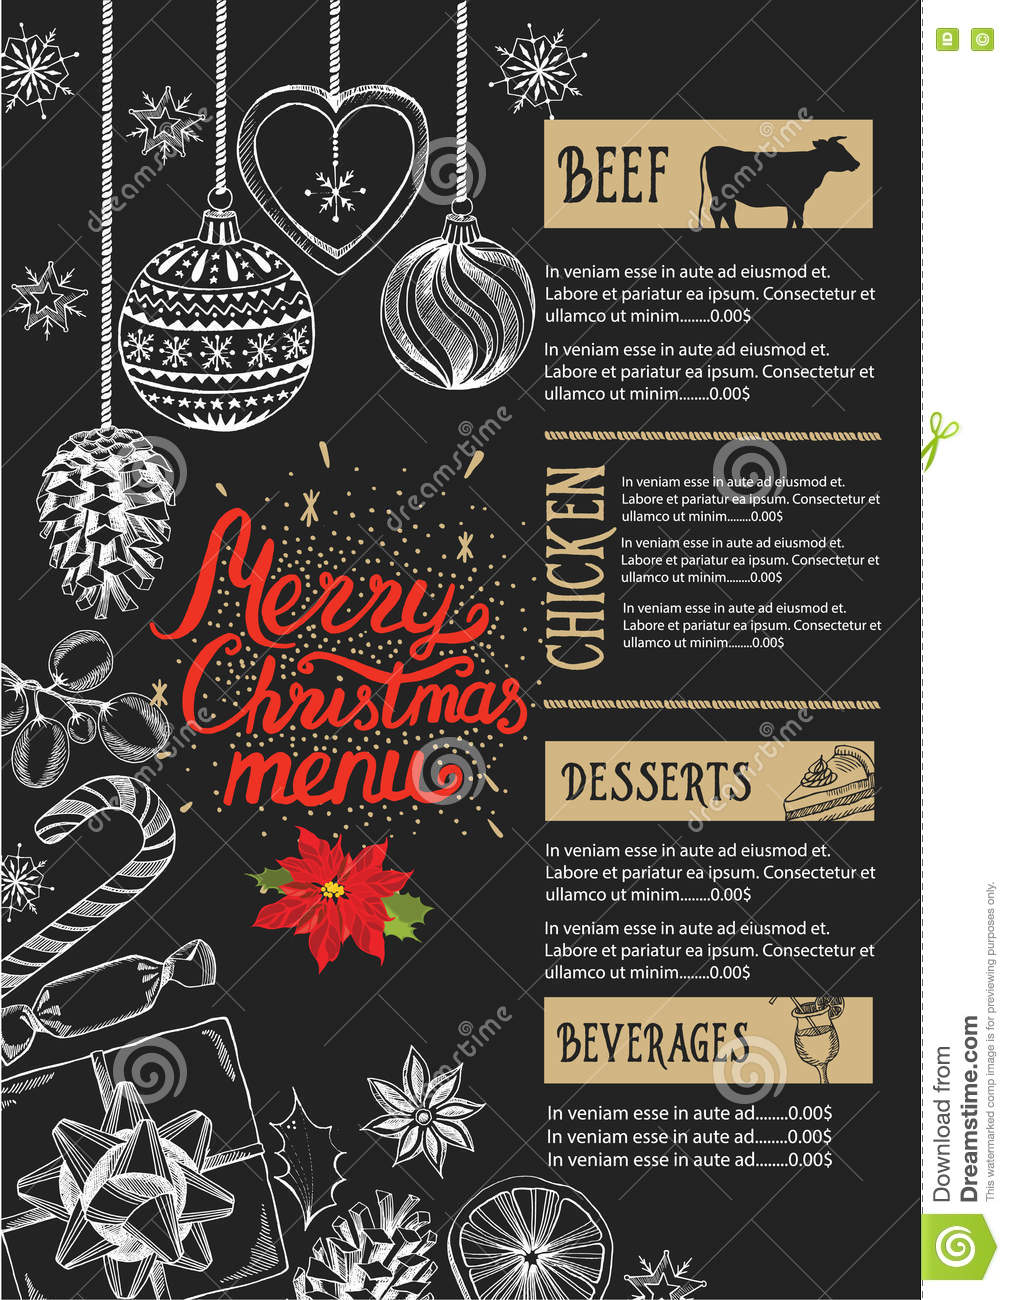 Christmas Party Invitation Food Menu Restaurant Stock Vector Image 78988178